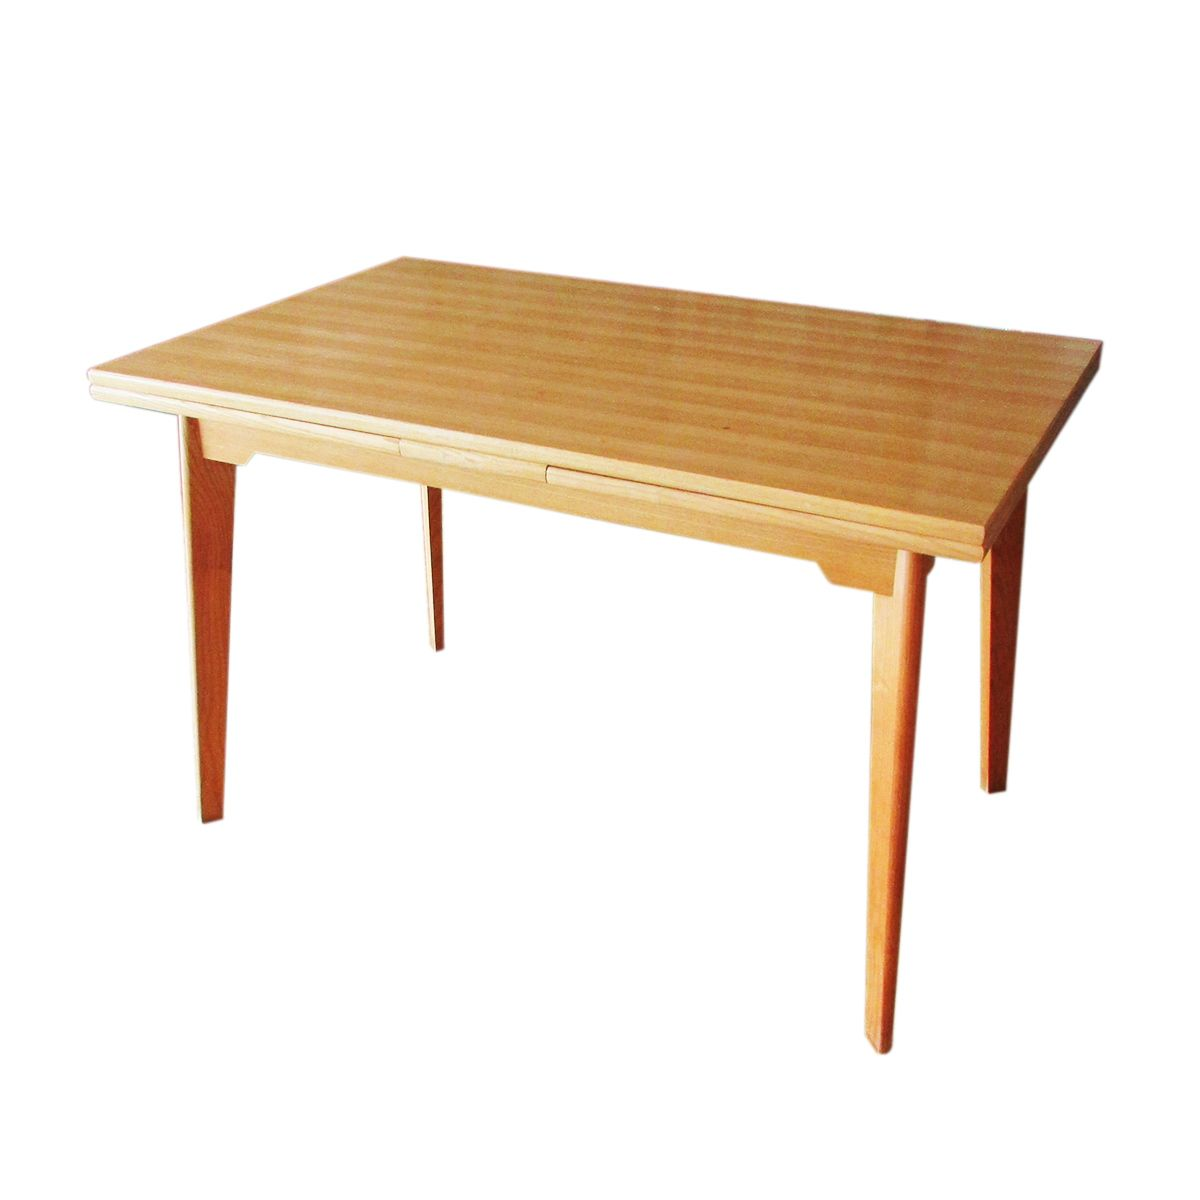 Vintage Extendable Dining Table Kitchen Harvard Beech Kitchen Harvard Beech Vintage Extendable